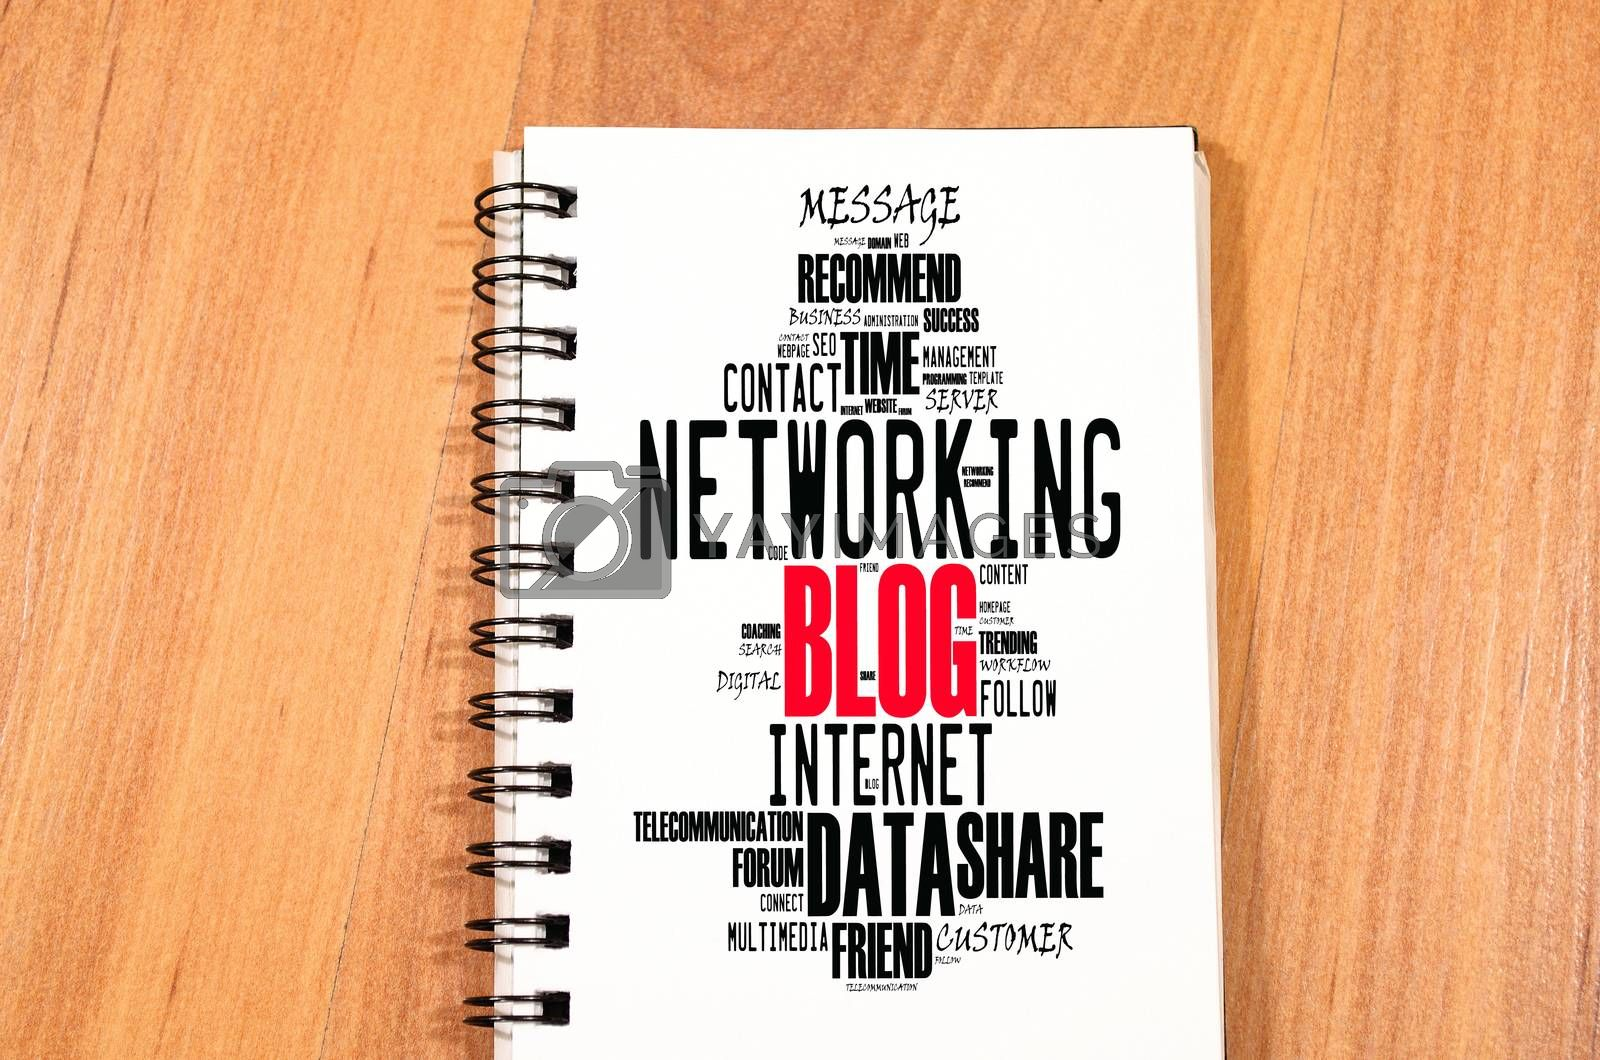 Blog word cloud collage over notepad background